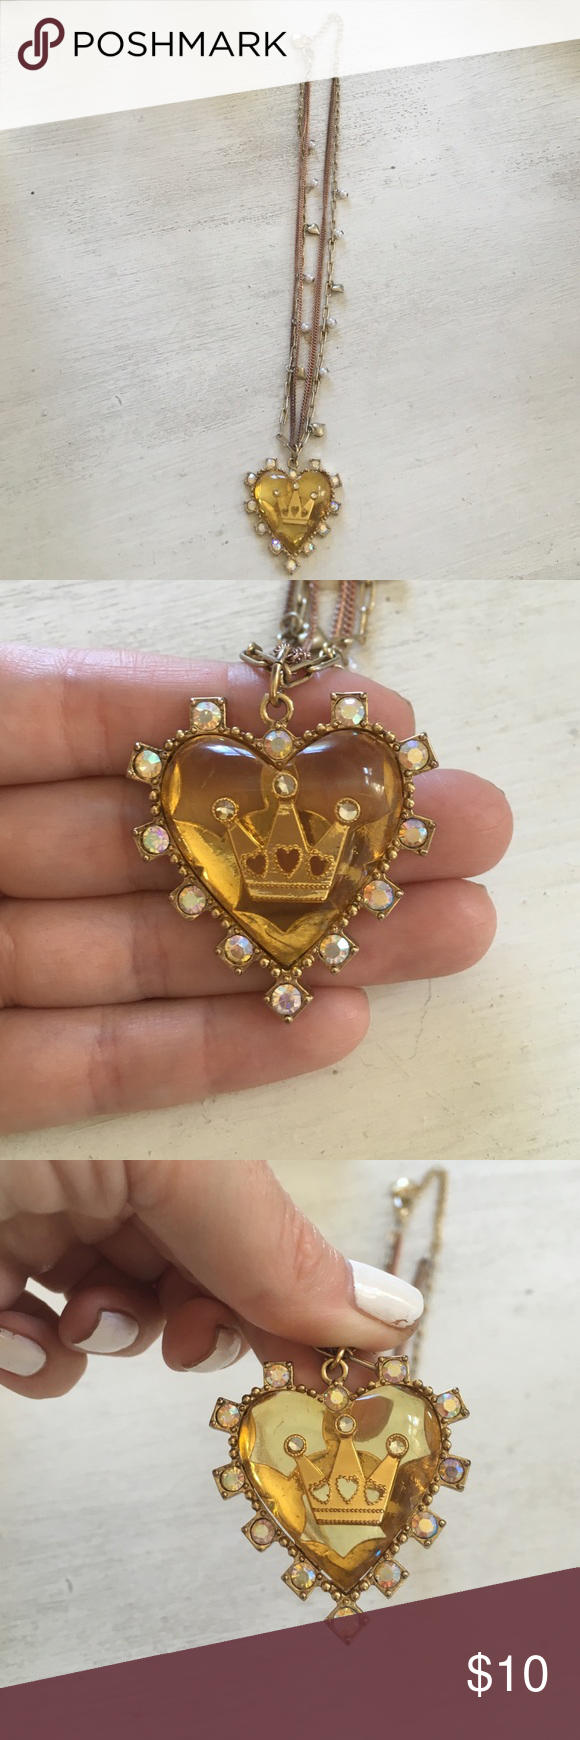 Betsey Johnson crown and heart necklace Excellent condition! Betsey Johnson Jewelry Necklaces